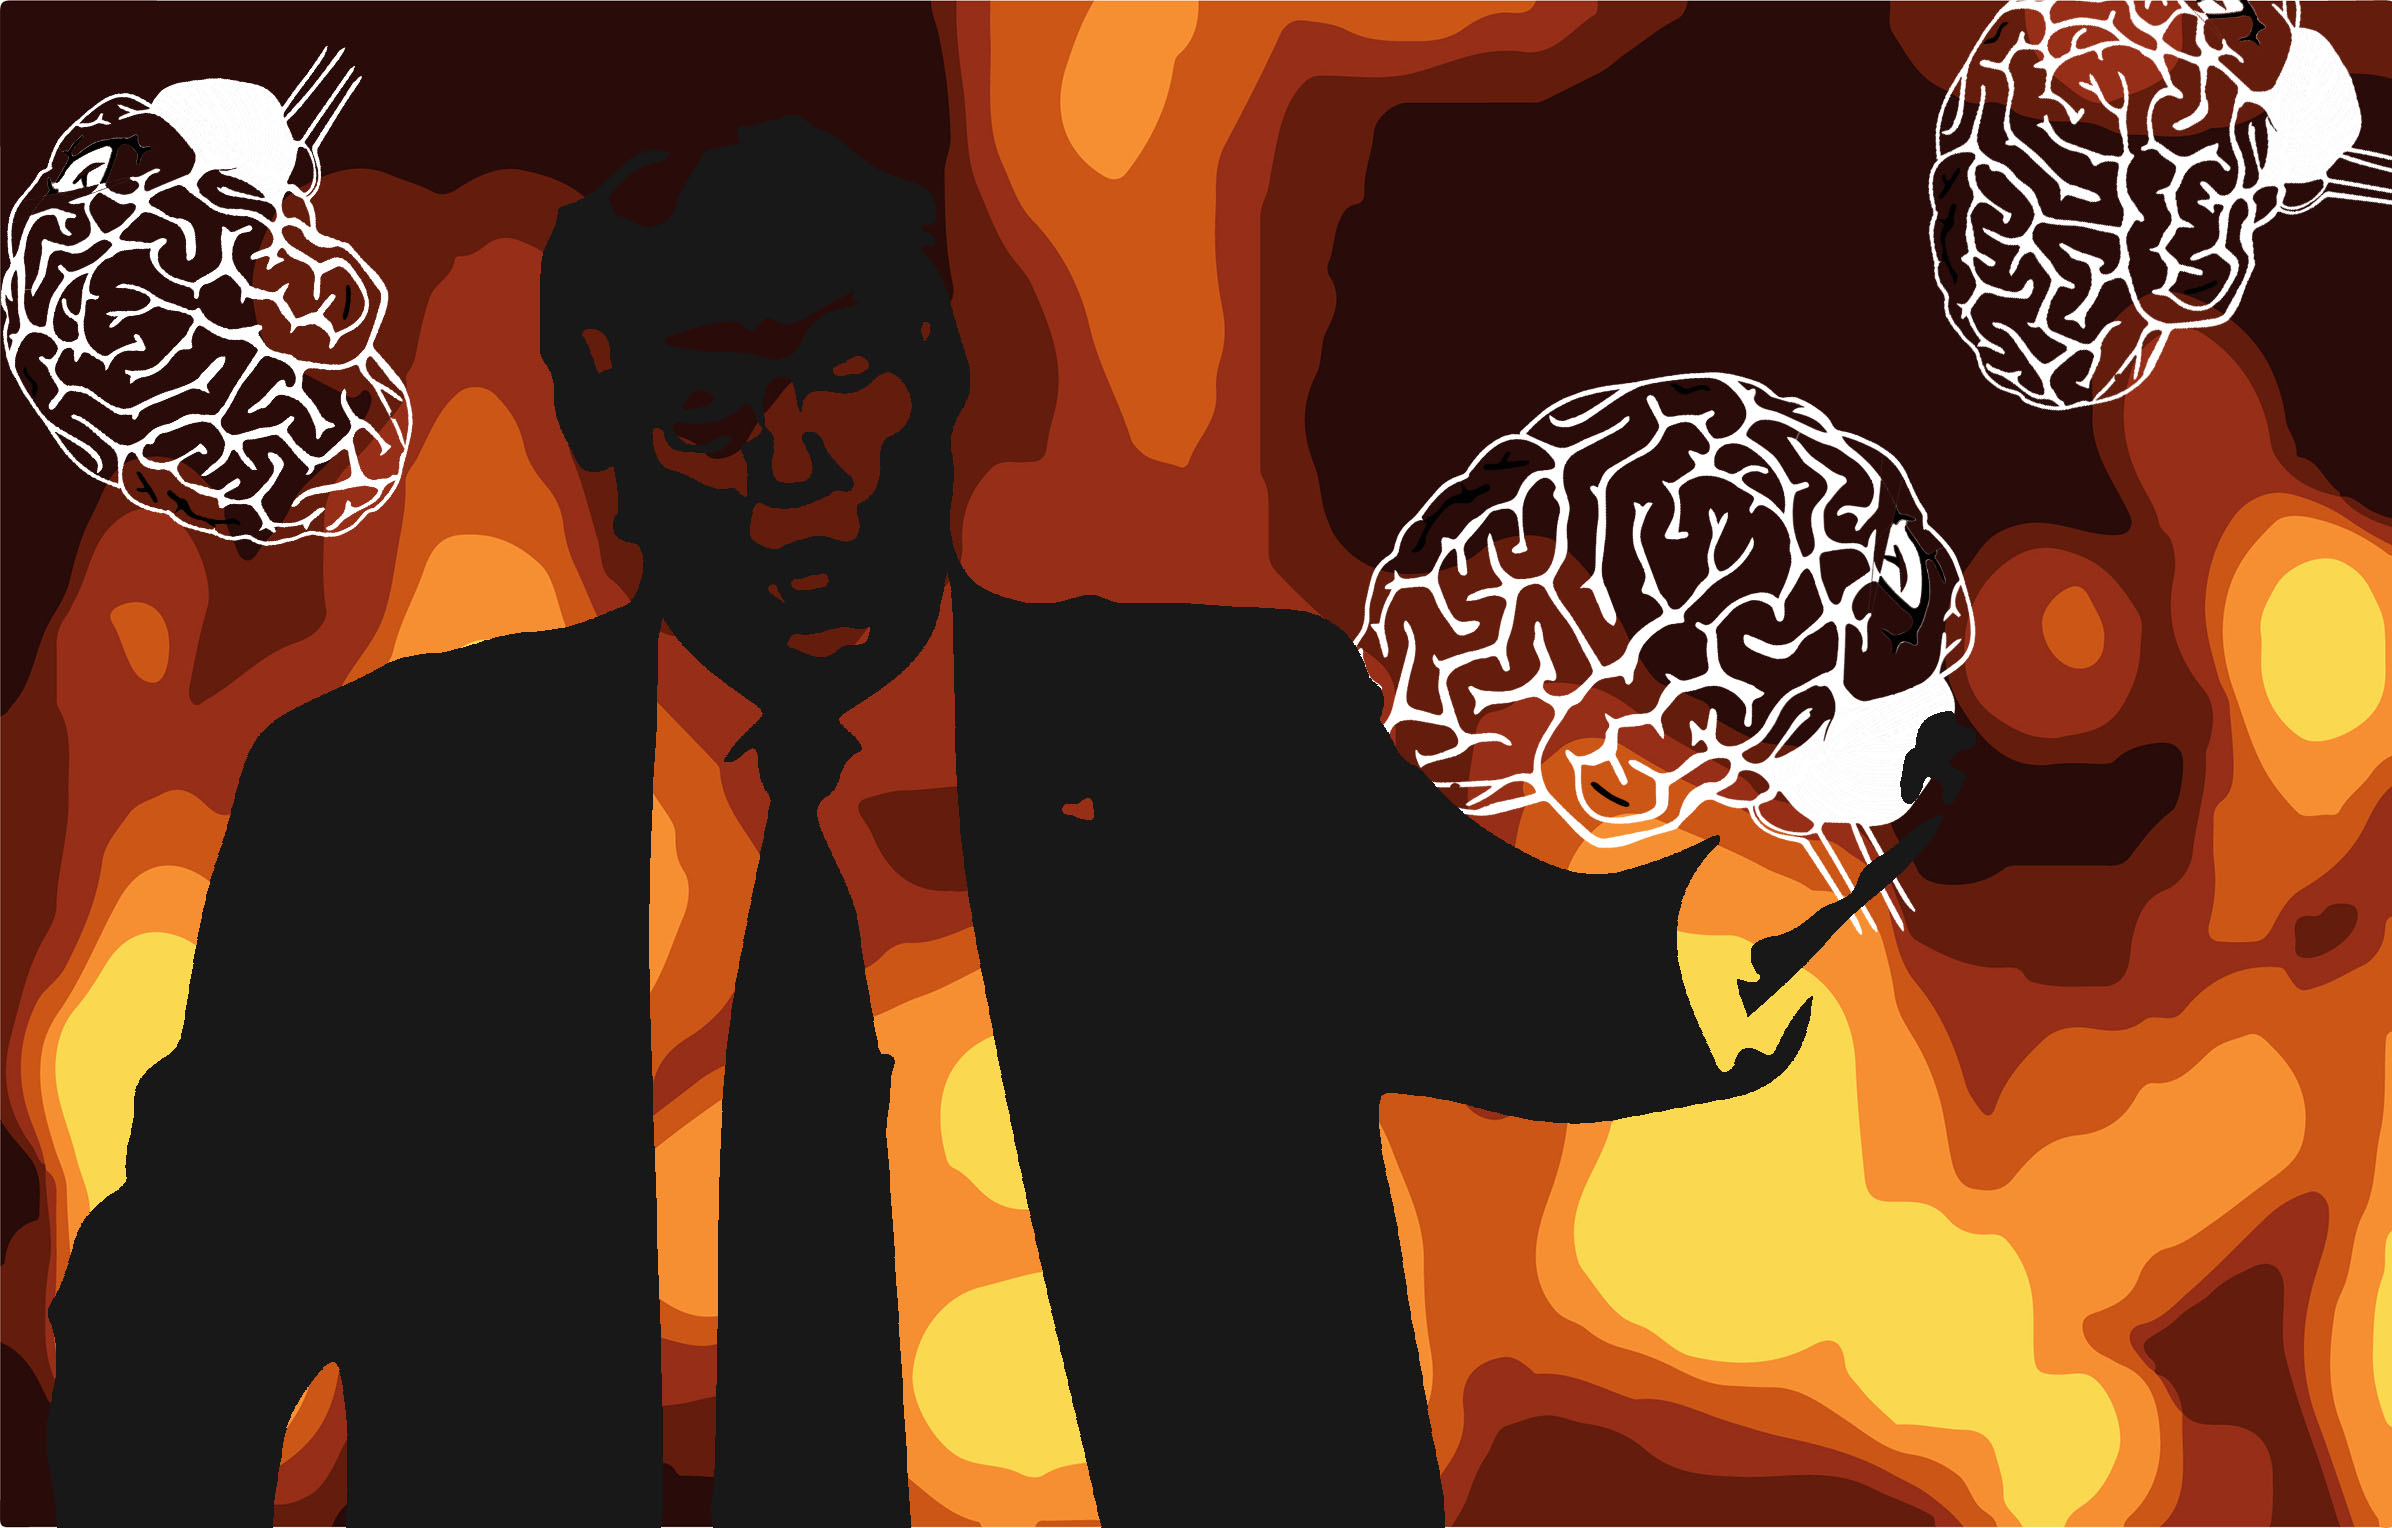 Art with a silhouette of Donald Trump against a fiery background.